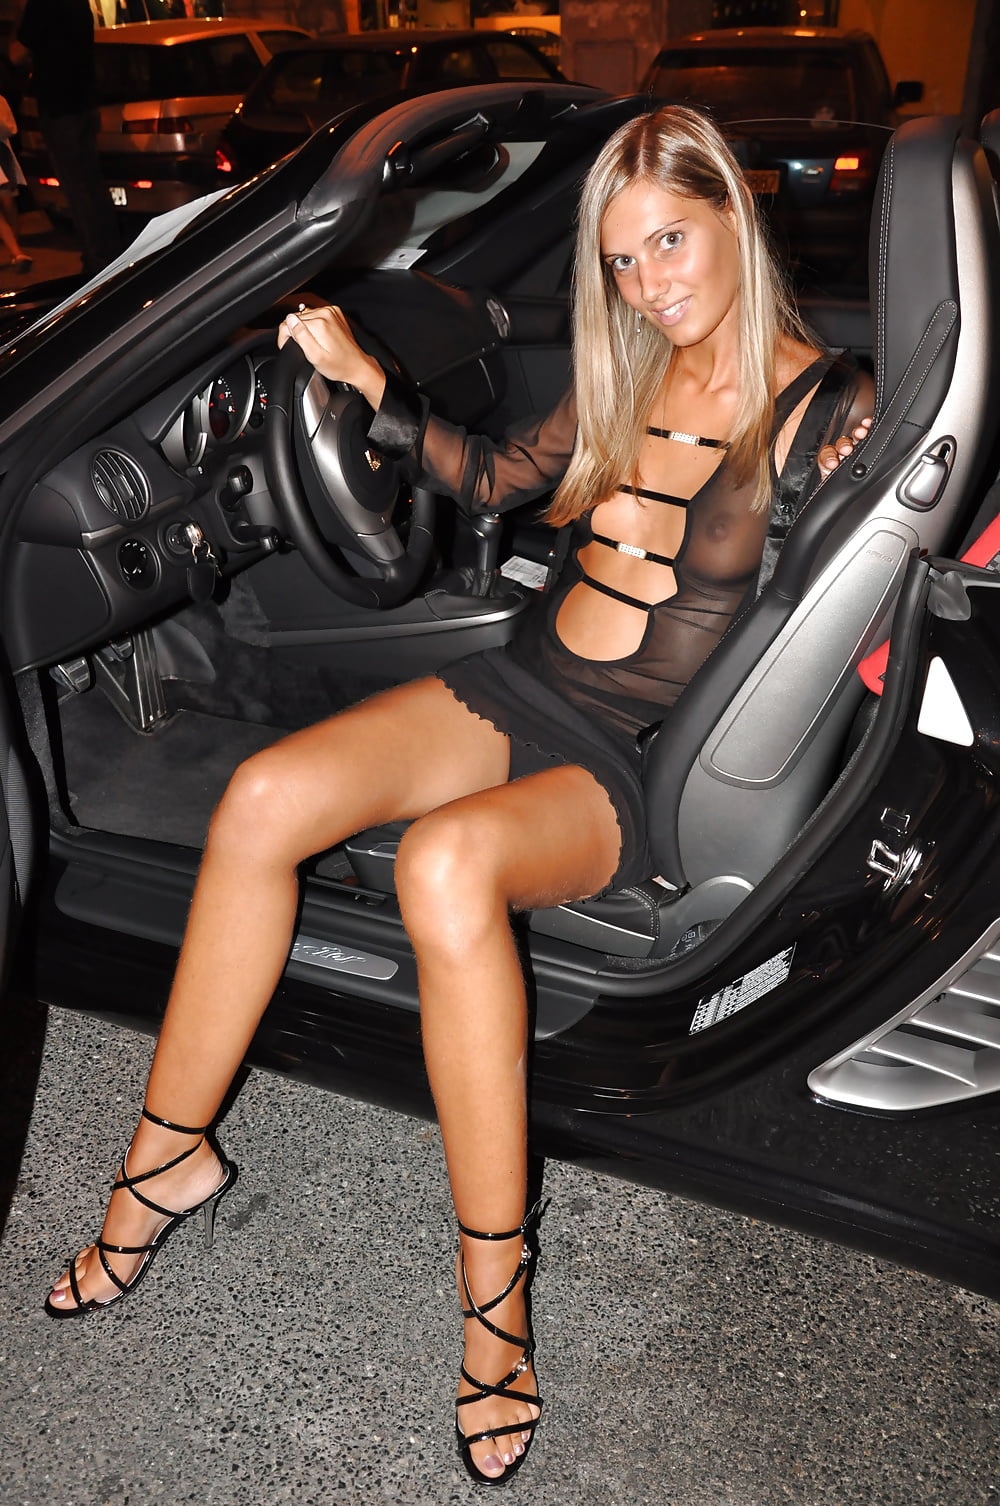 Car upskirt video, sexy tittyfuck sex gif